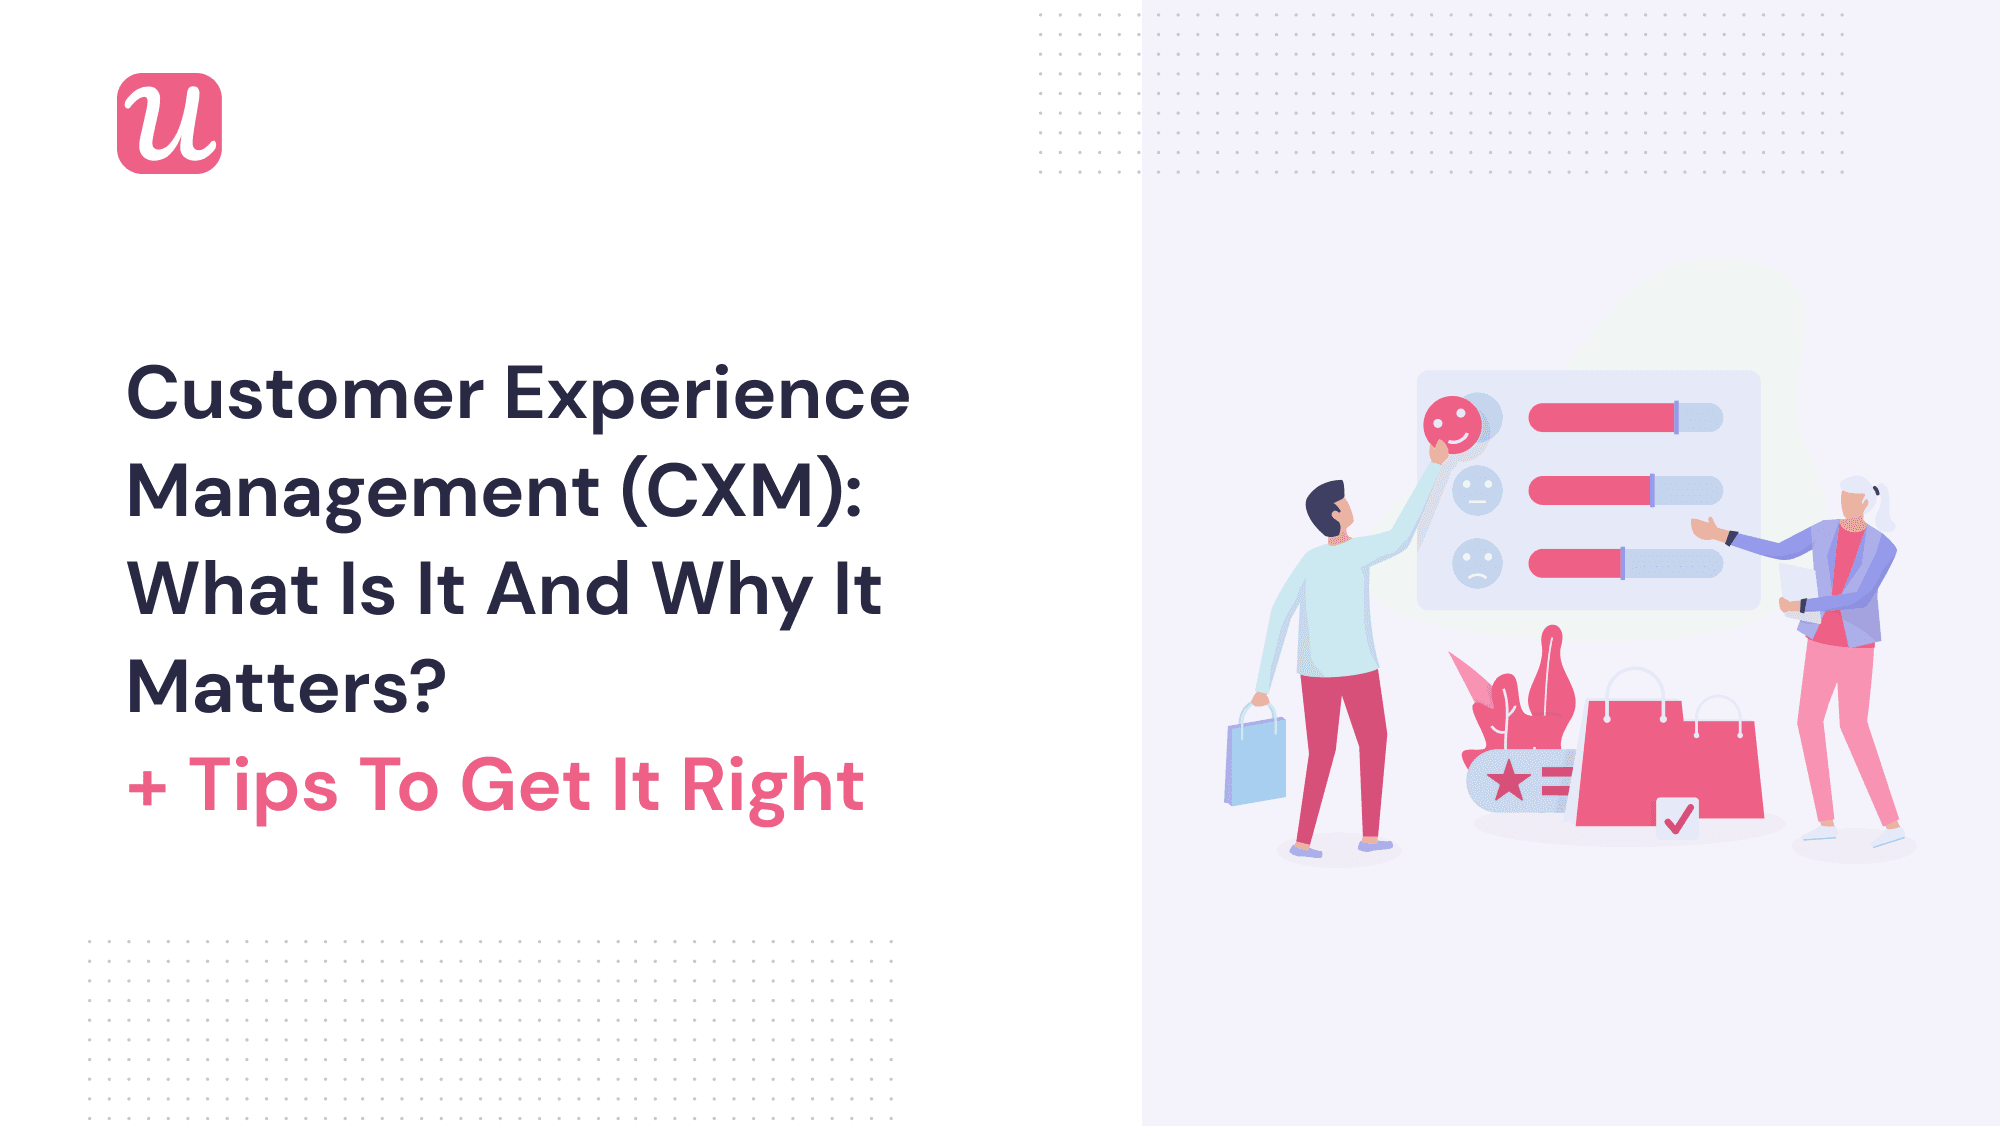 Customer Experience Management (CXM): What Is It and Why It Matters [+ Tips To Get It Right]